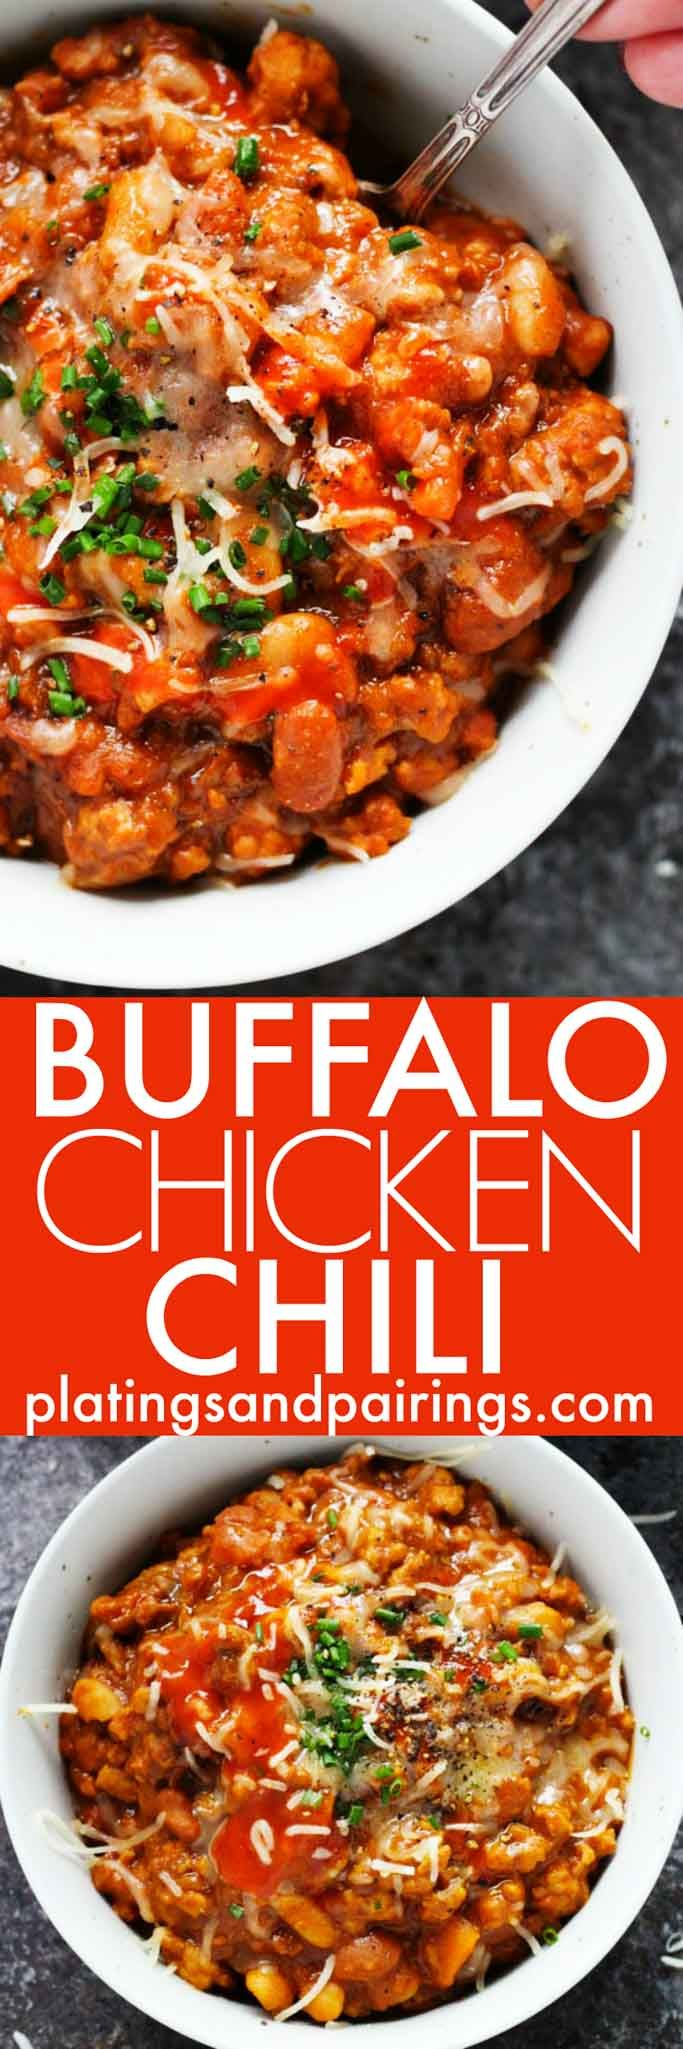 This Buffalo Chicken Chili features all the flavors of your favorite finger food in a spicy chili. It's a new healthy and hearty way to enjoy buffalo wings!   platingsandpairings.com